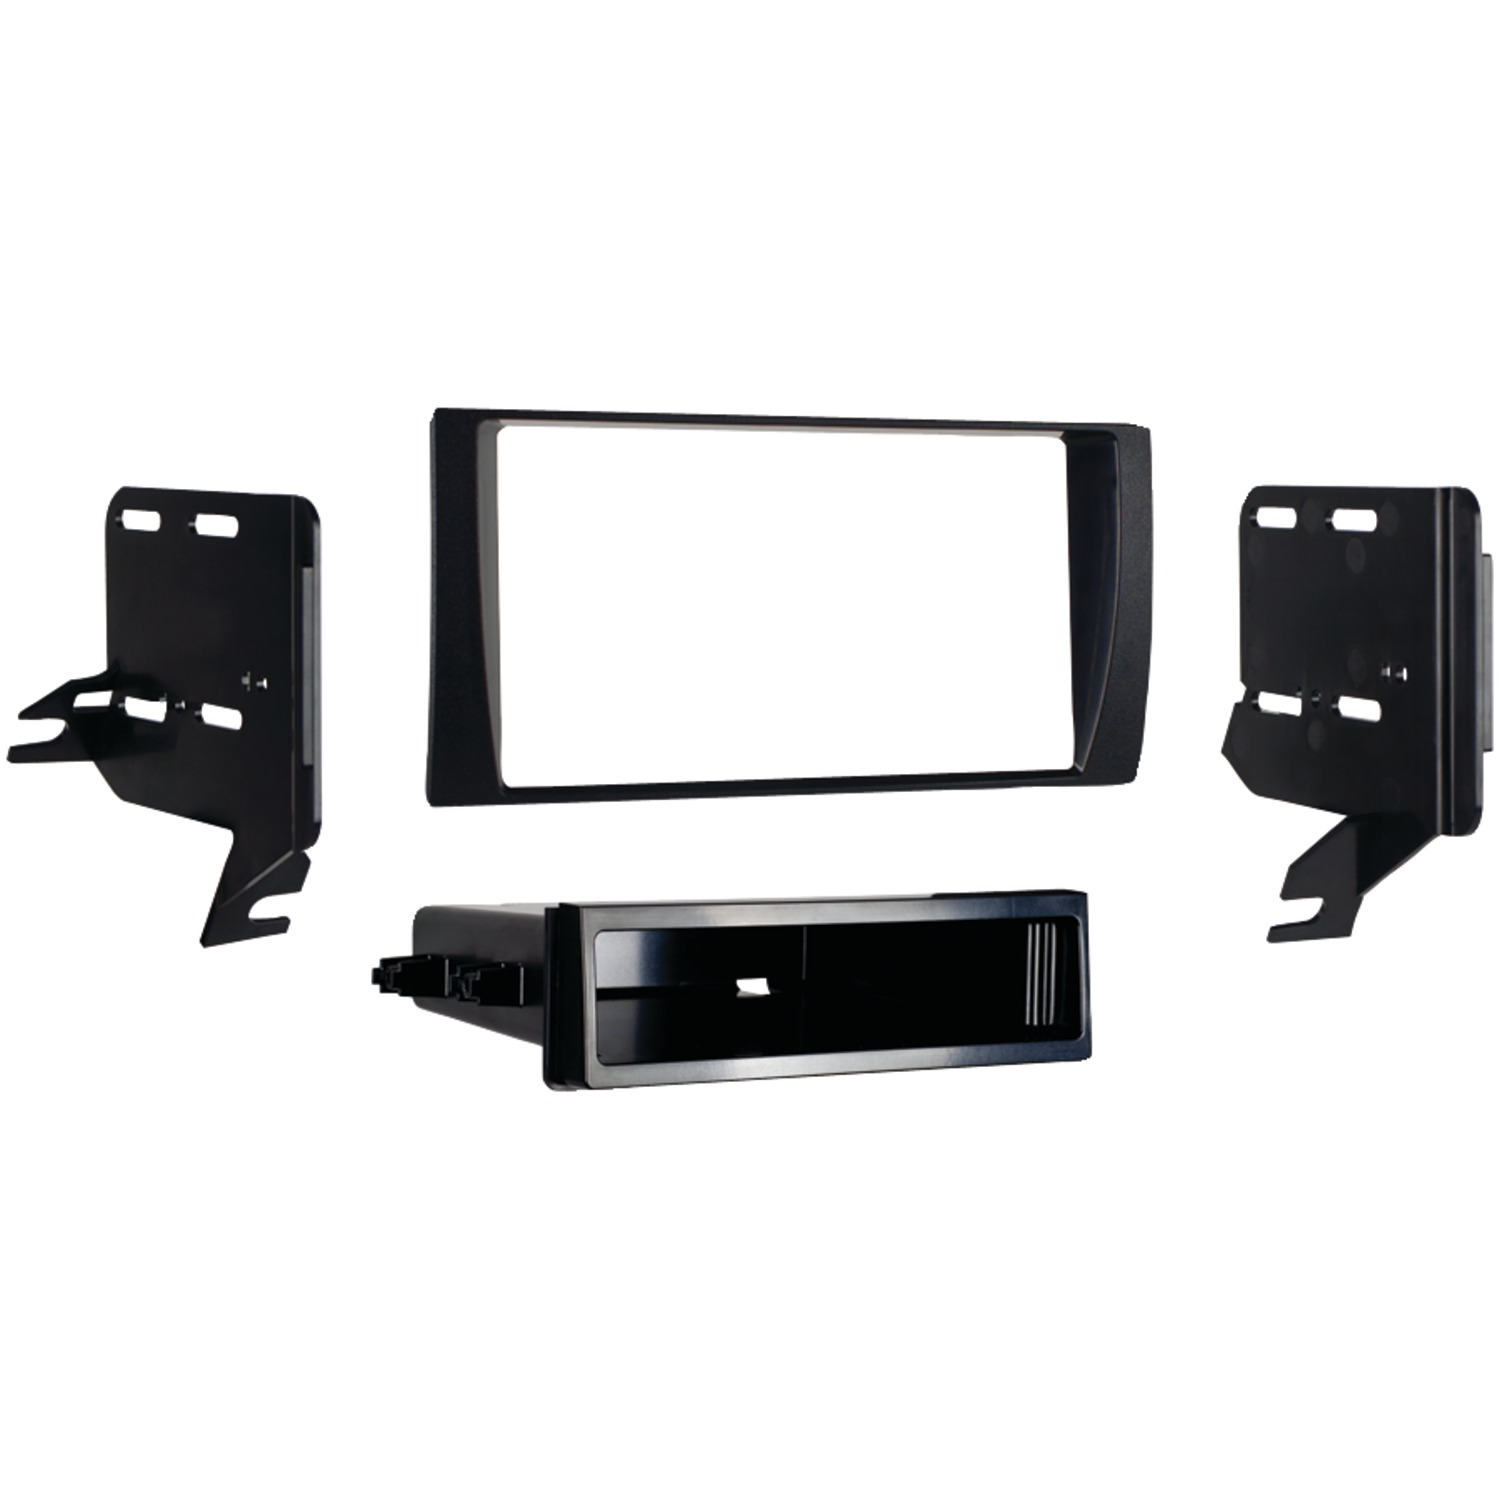 Metra 99-8231 2002–2006 Toyota Camry Single- or Double-DIN Installation Kit